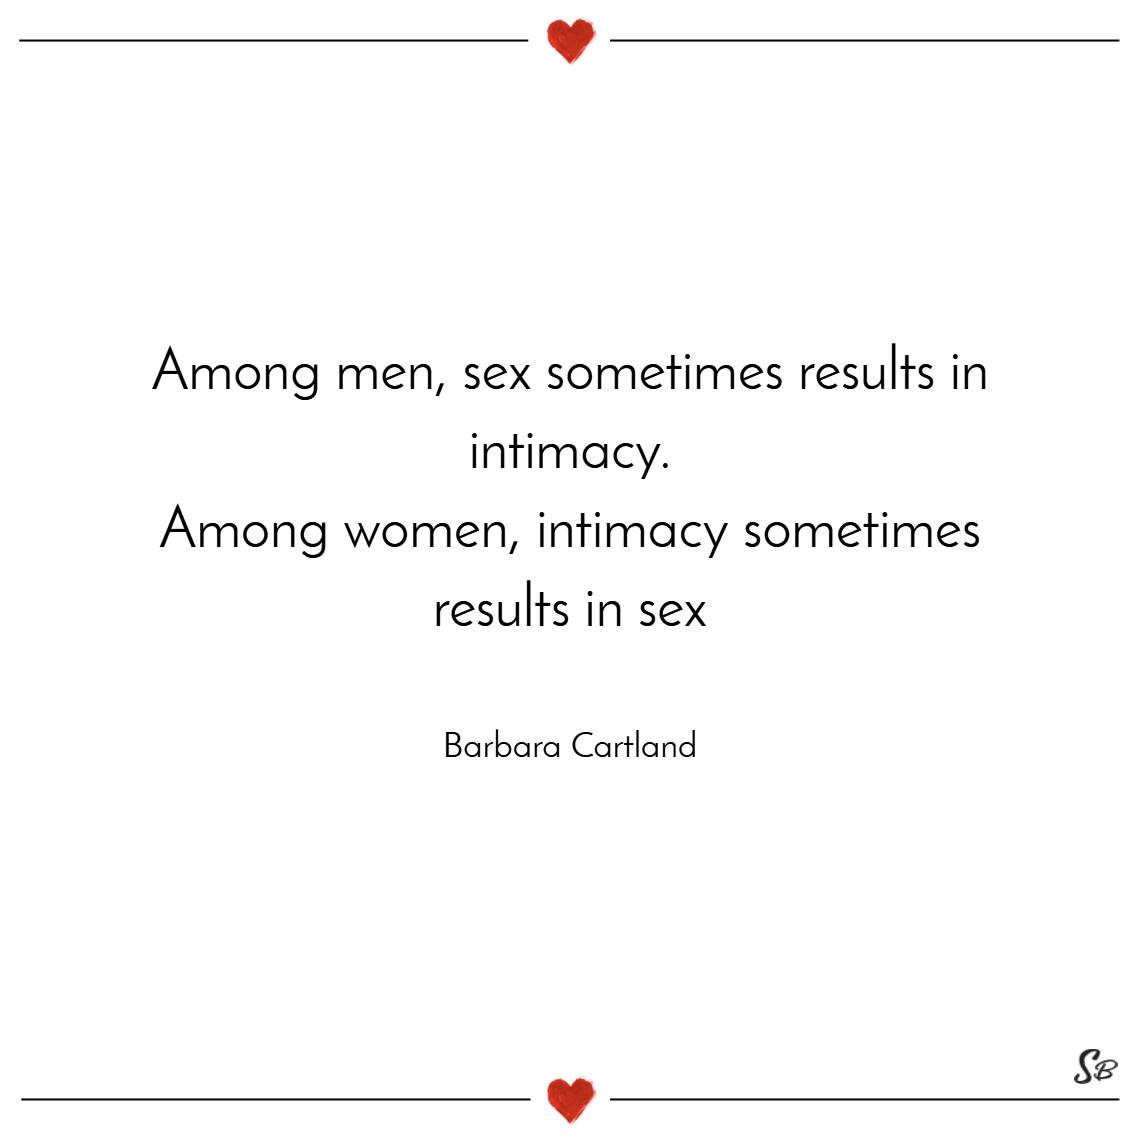 Among men, sex sometimes results in intimacy; among women, intimacy sometimes results in sex. – barbara cartland